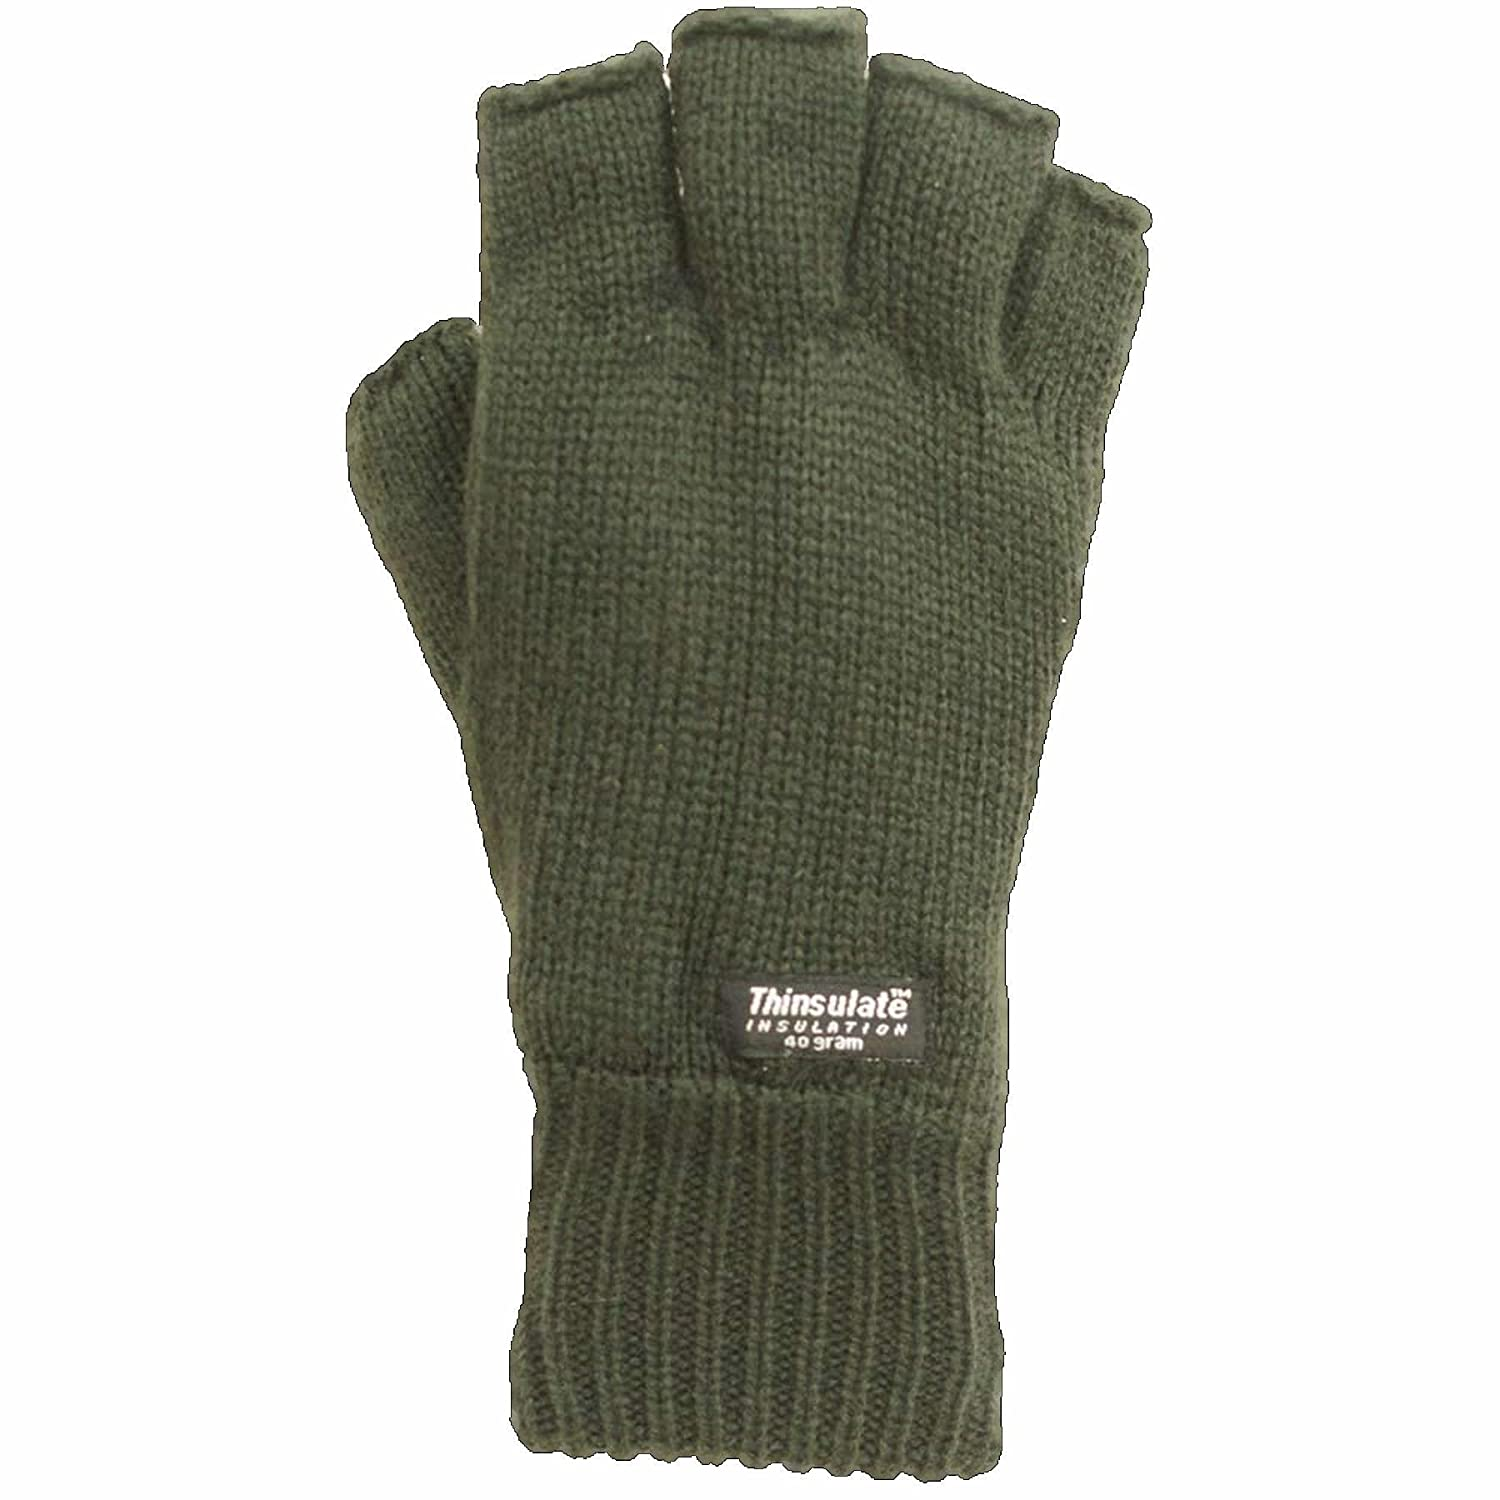 mens fingerless gloves thinsulate green olive black camo fishing fleece lined